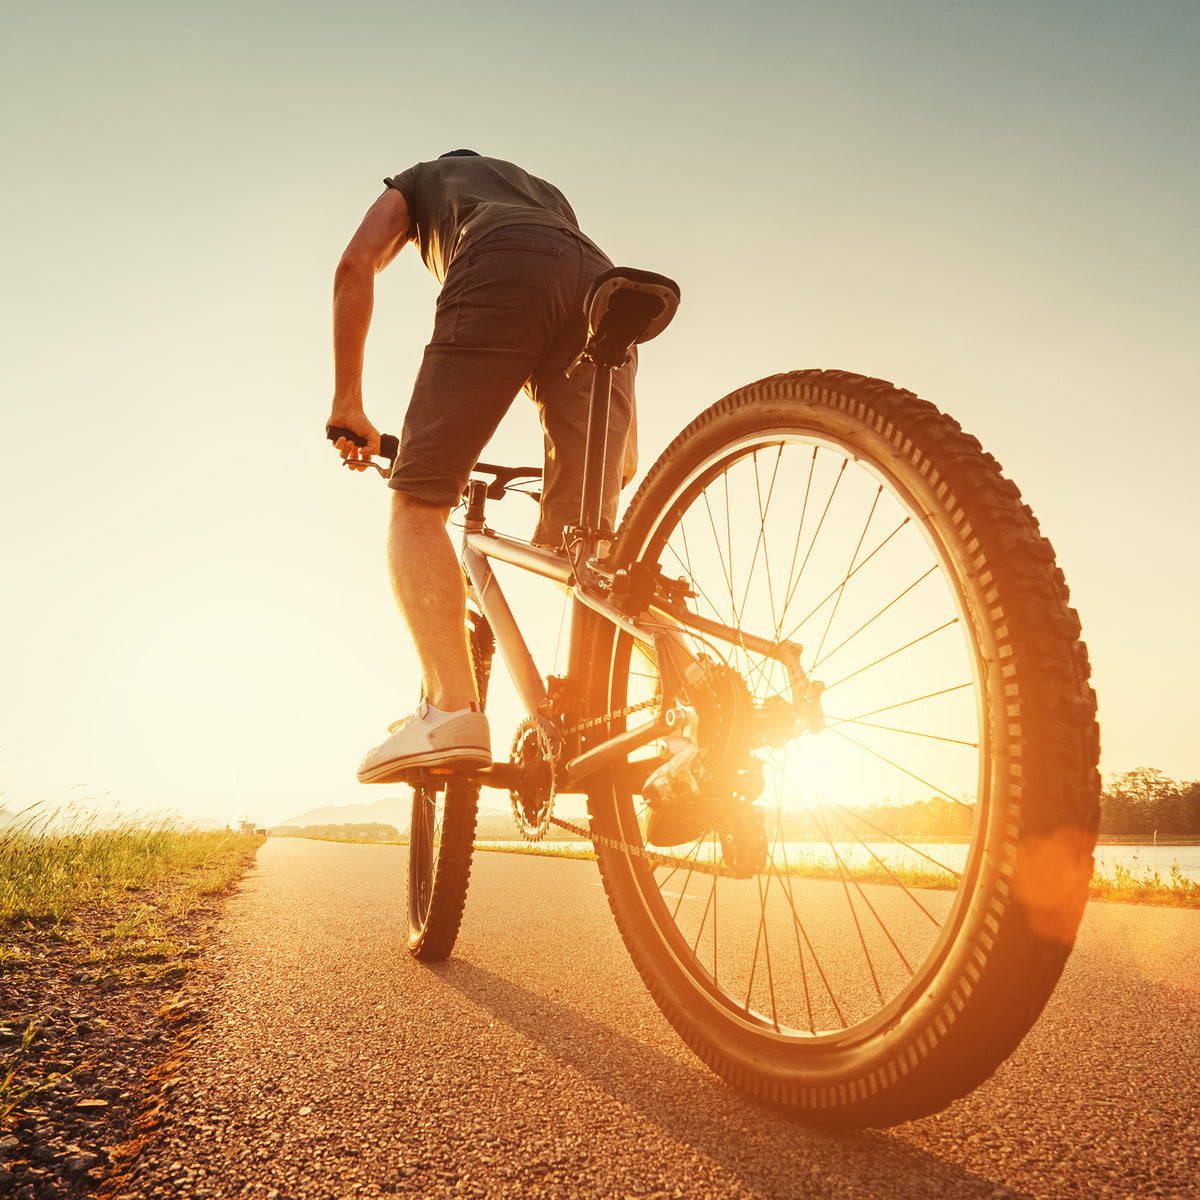 10 Tips For Bike Riding In Summer Heat